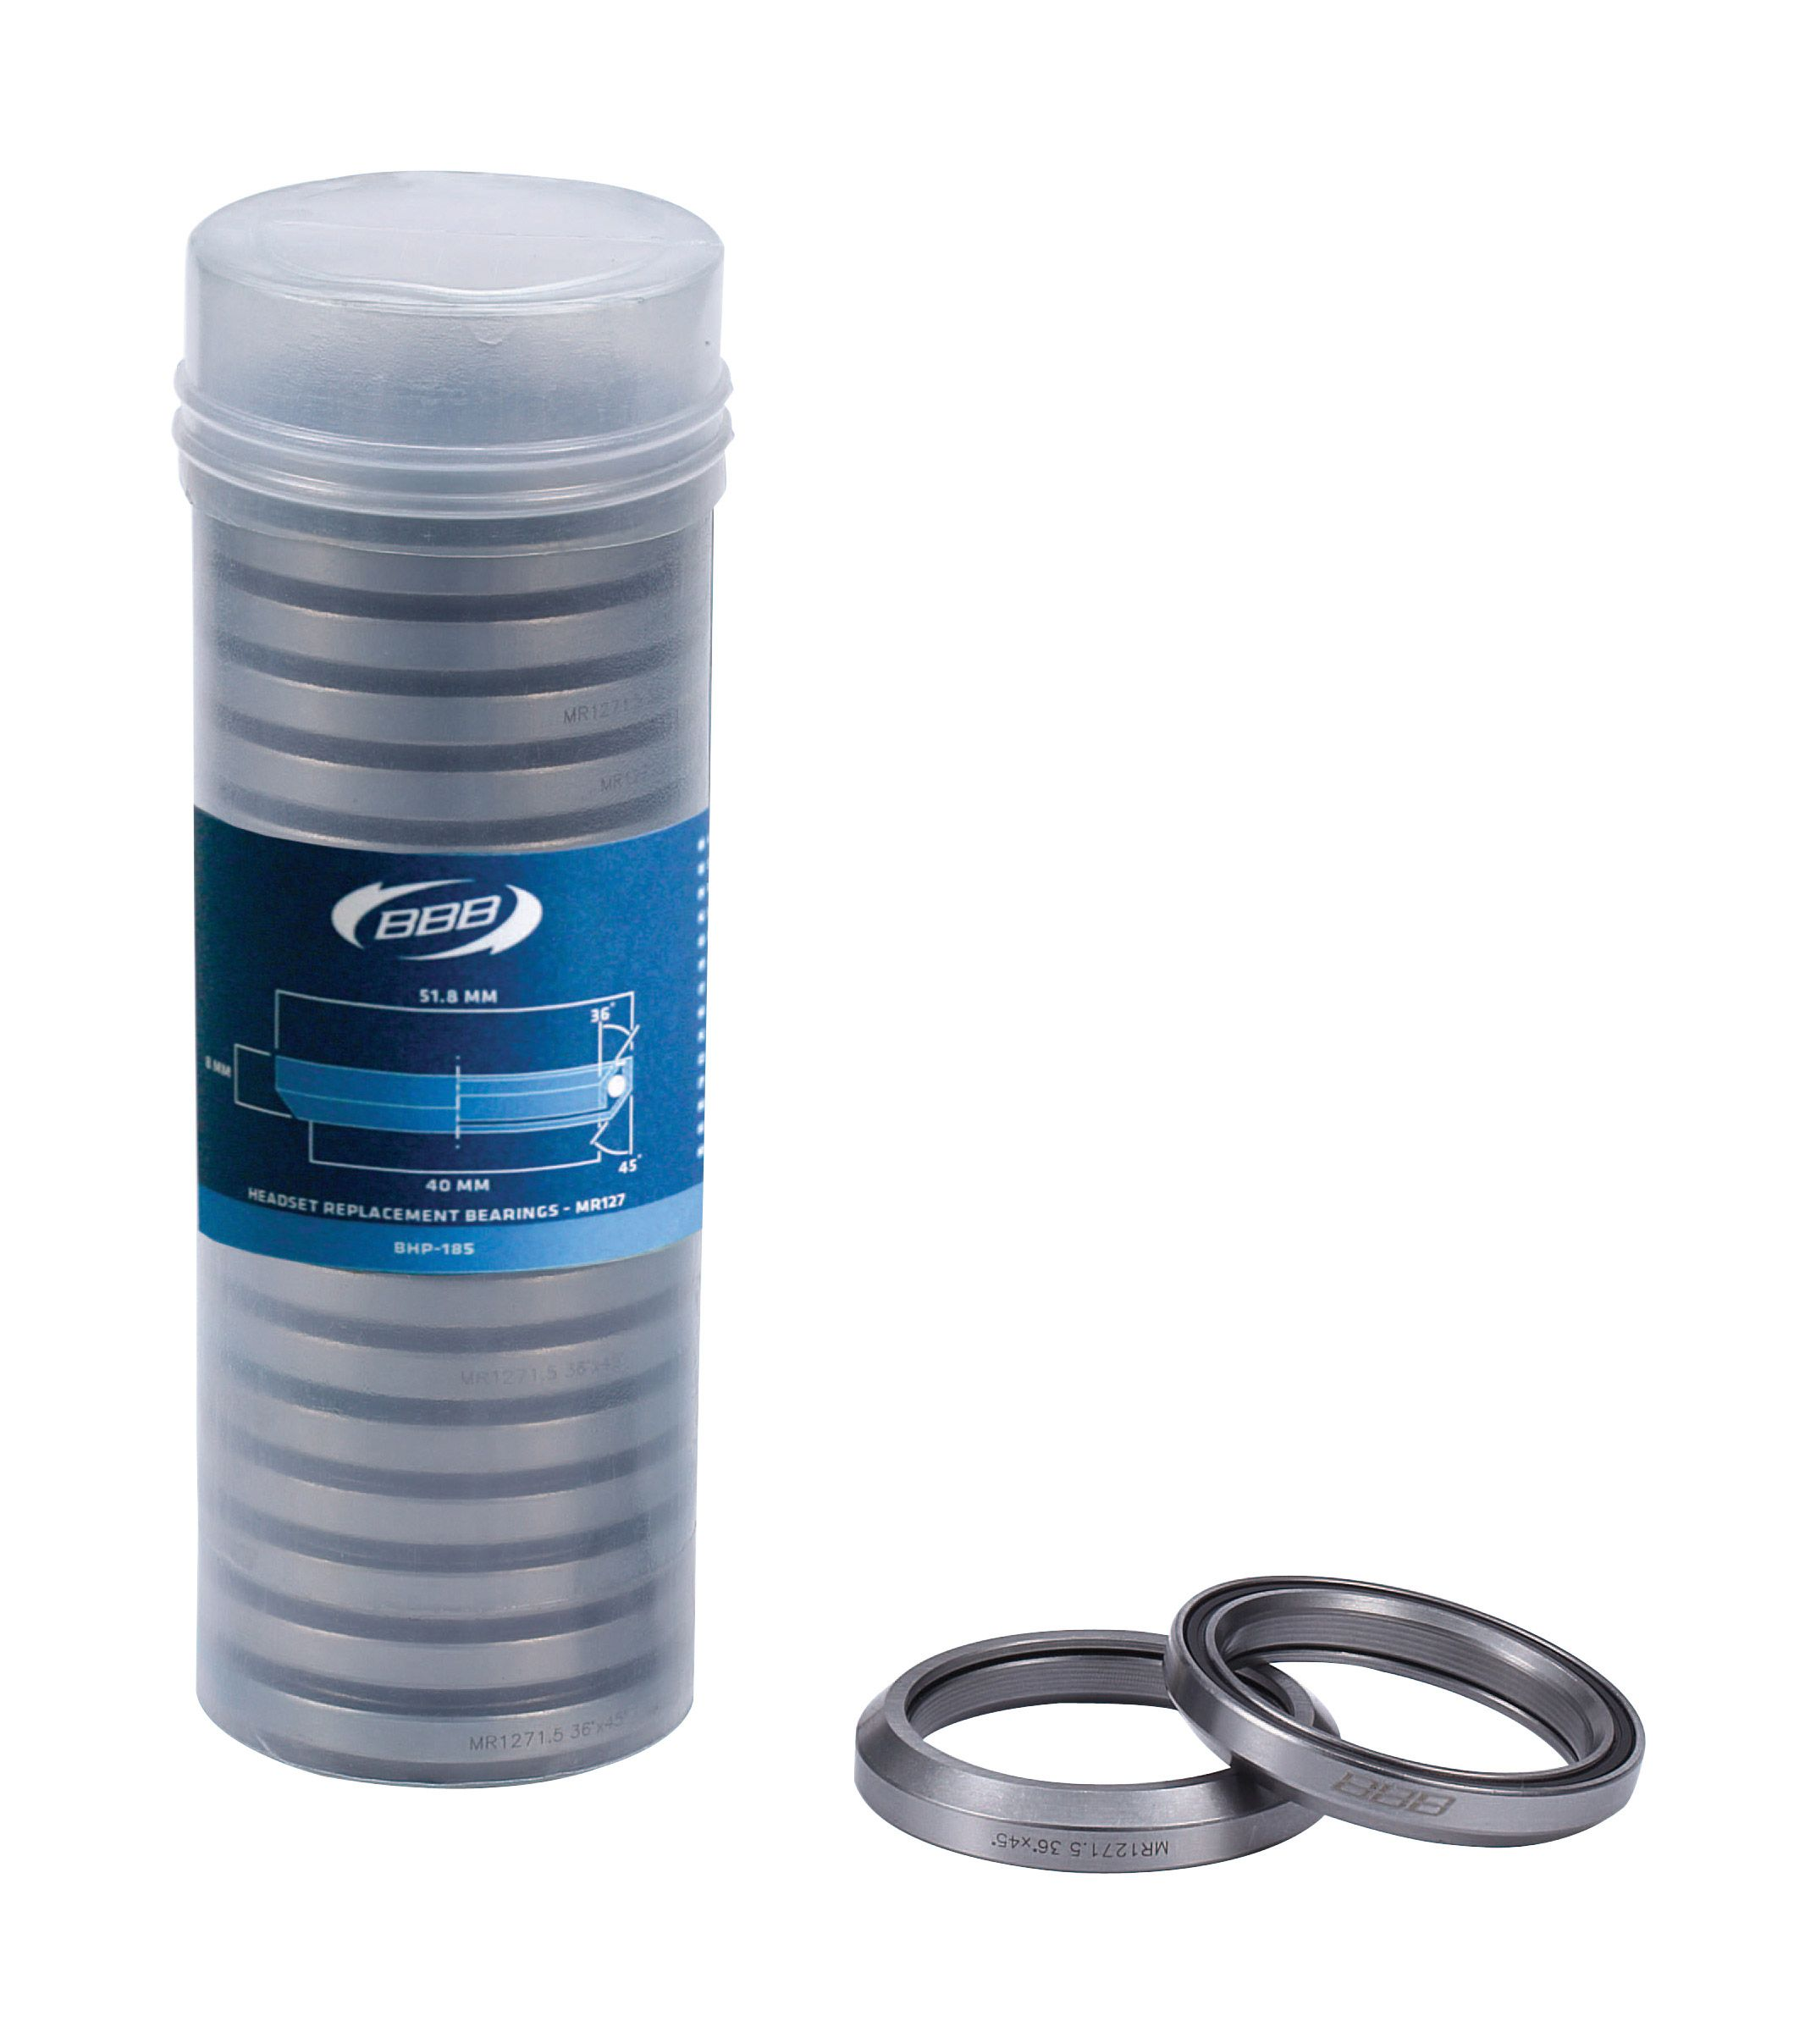 BBB BHP-185 - HEADSET BEARINGS (-20, 1.5, 51.8-8MM, 36 DEGREE-45 DEGREE) 2929628501